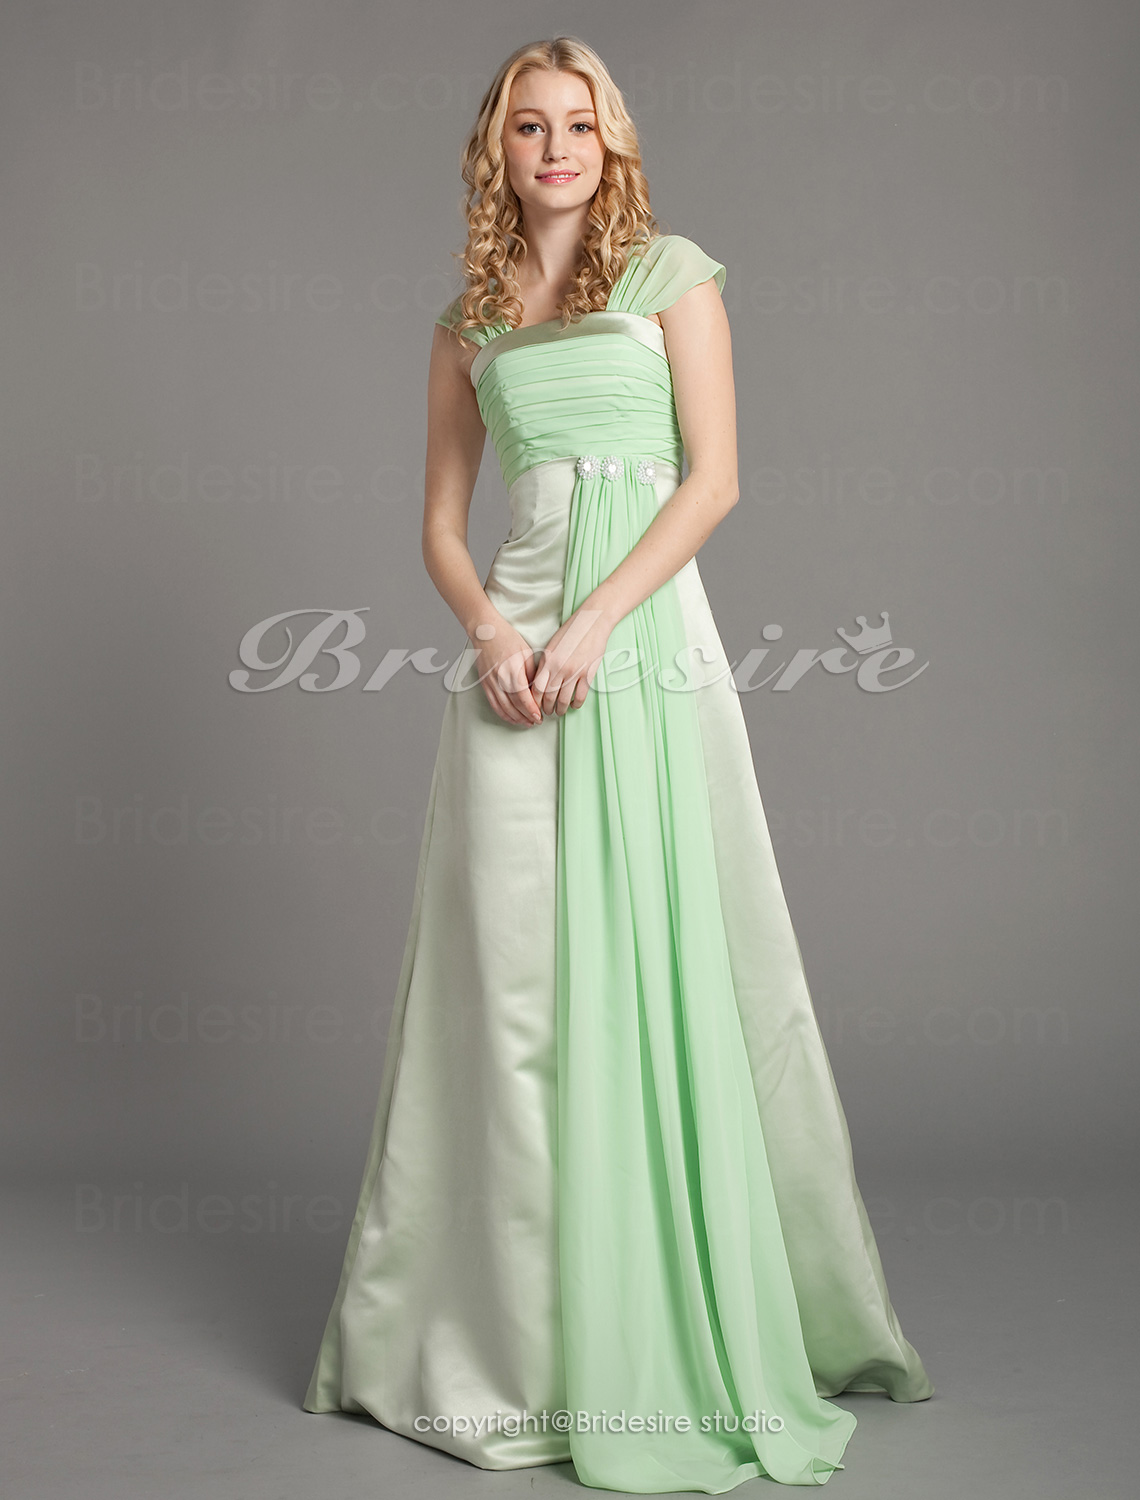 Sheath/ Column Floor-length Square Satin Chiffon Bridesmaid Dress